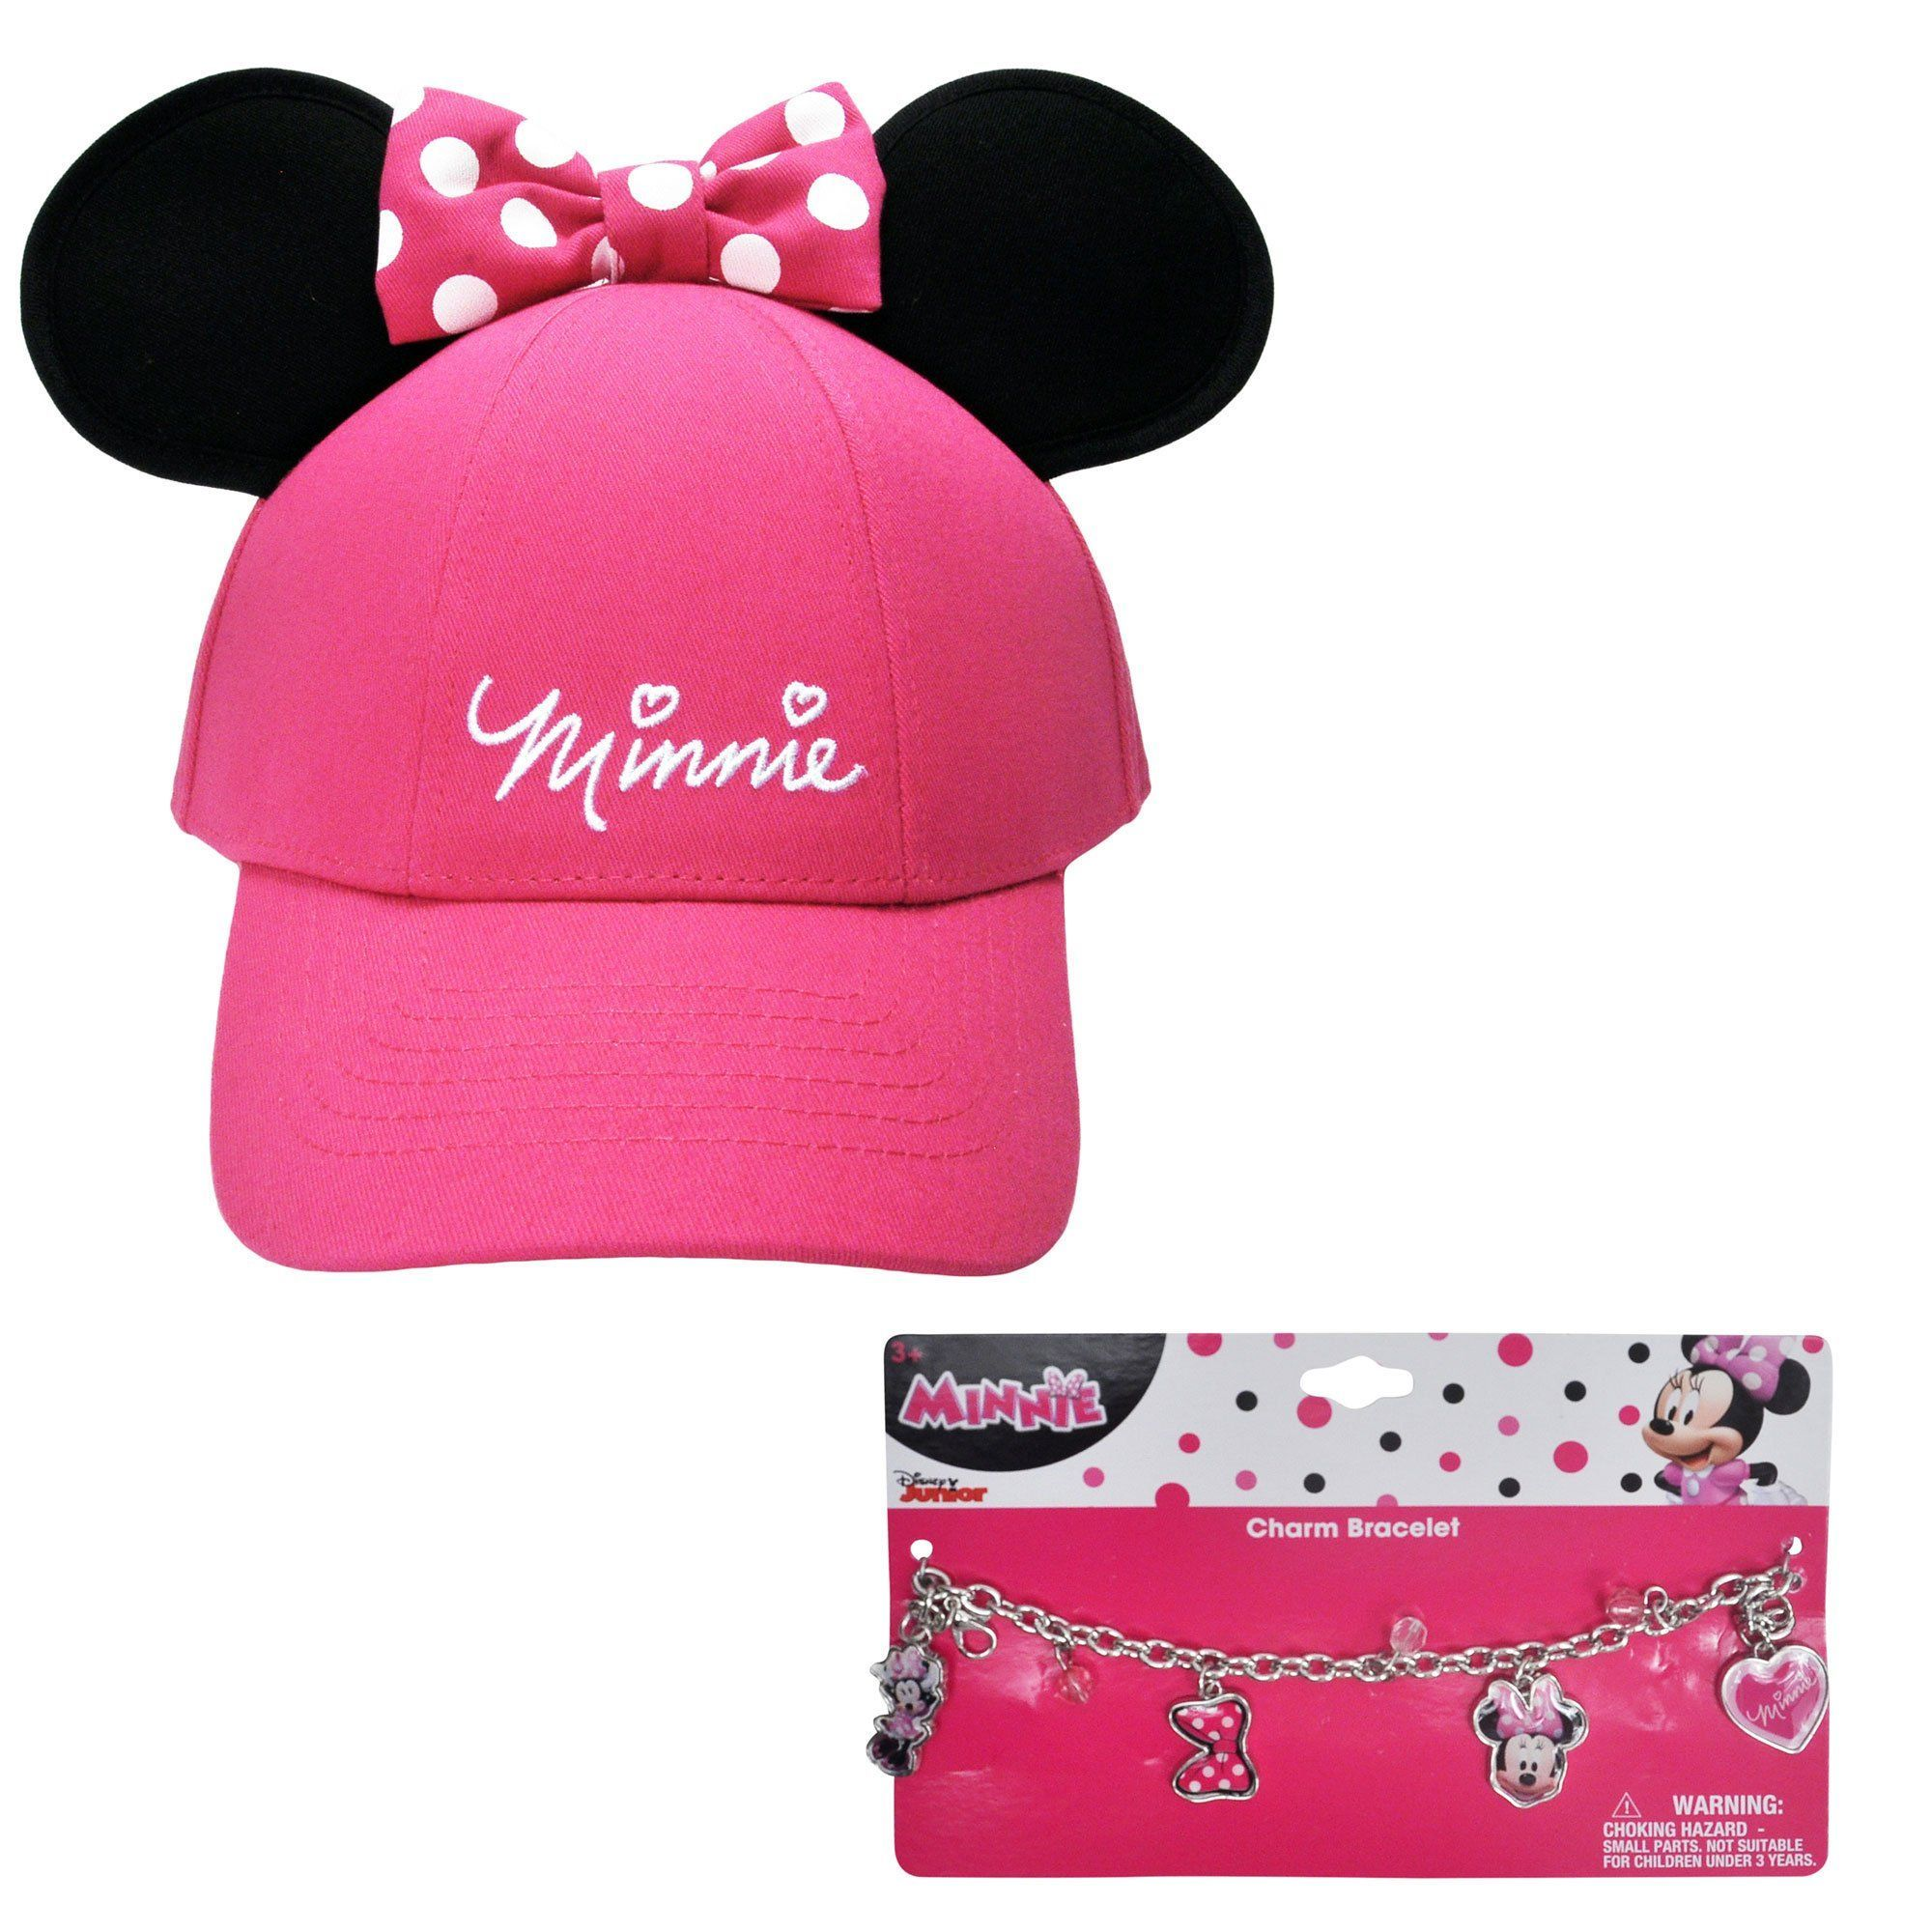 16dd92f07d68b Disney Girls Minnie Mouse Pink Hat with Ears   Charm Bracelet ...